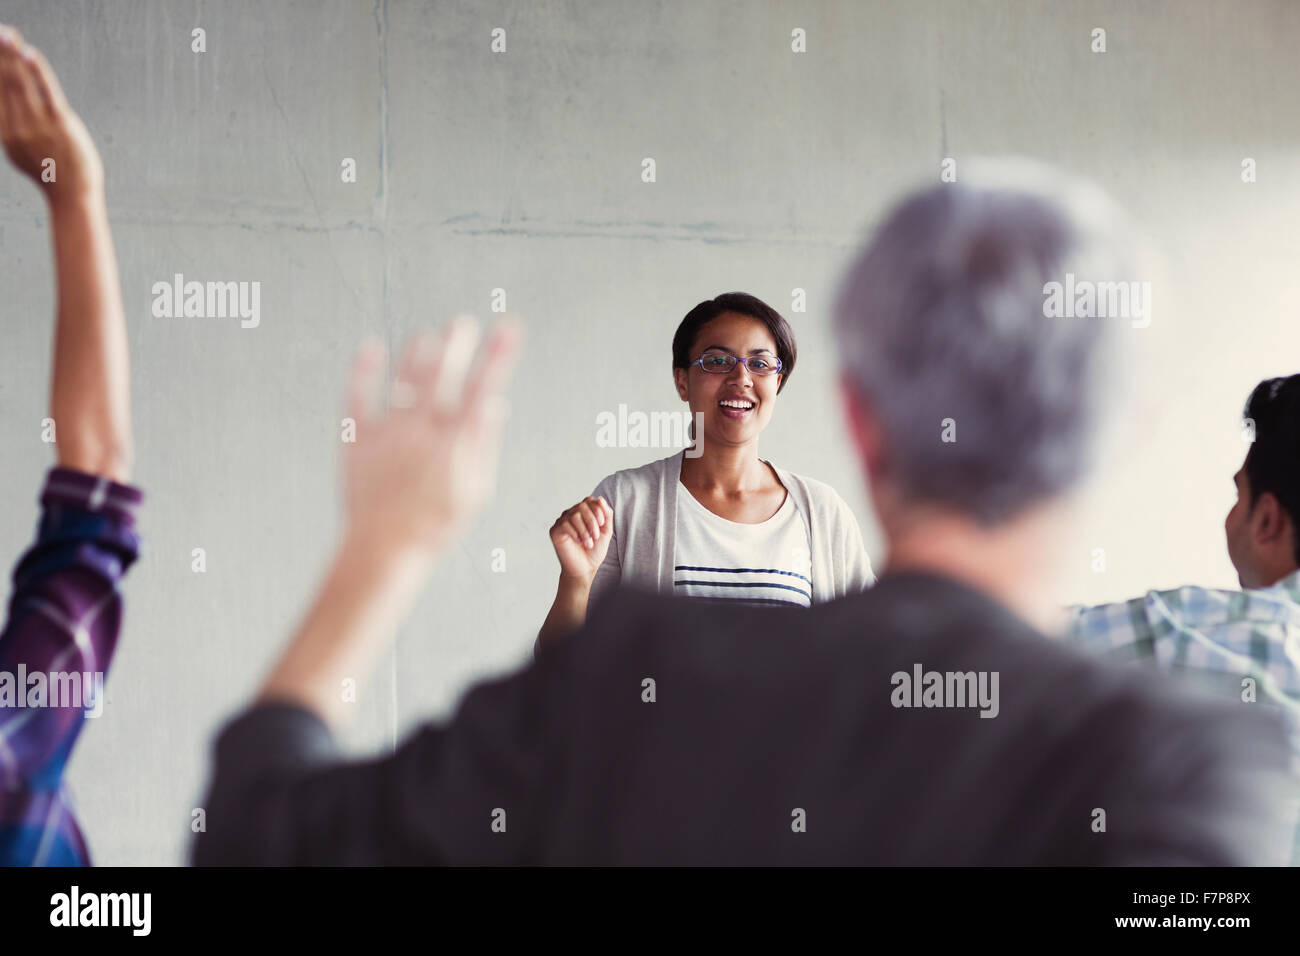 Teacher calling on students with hands raised in adult education classroom - Stock Image